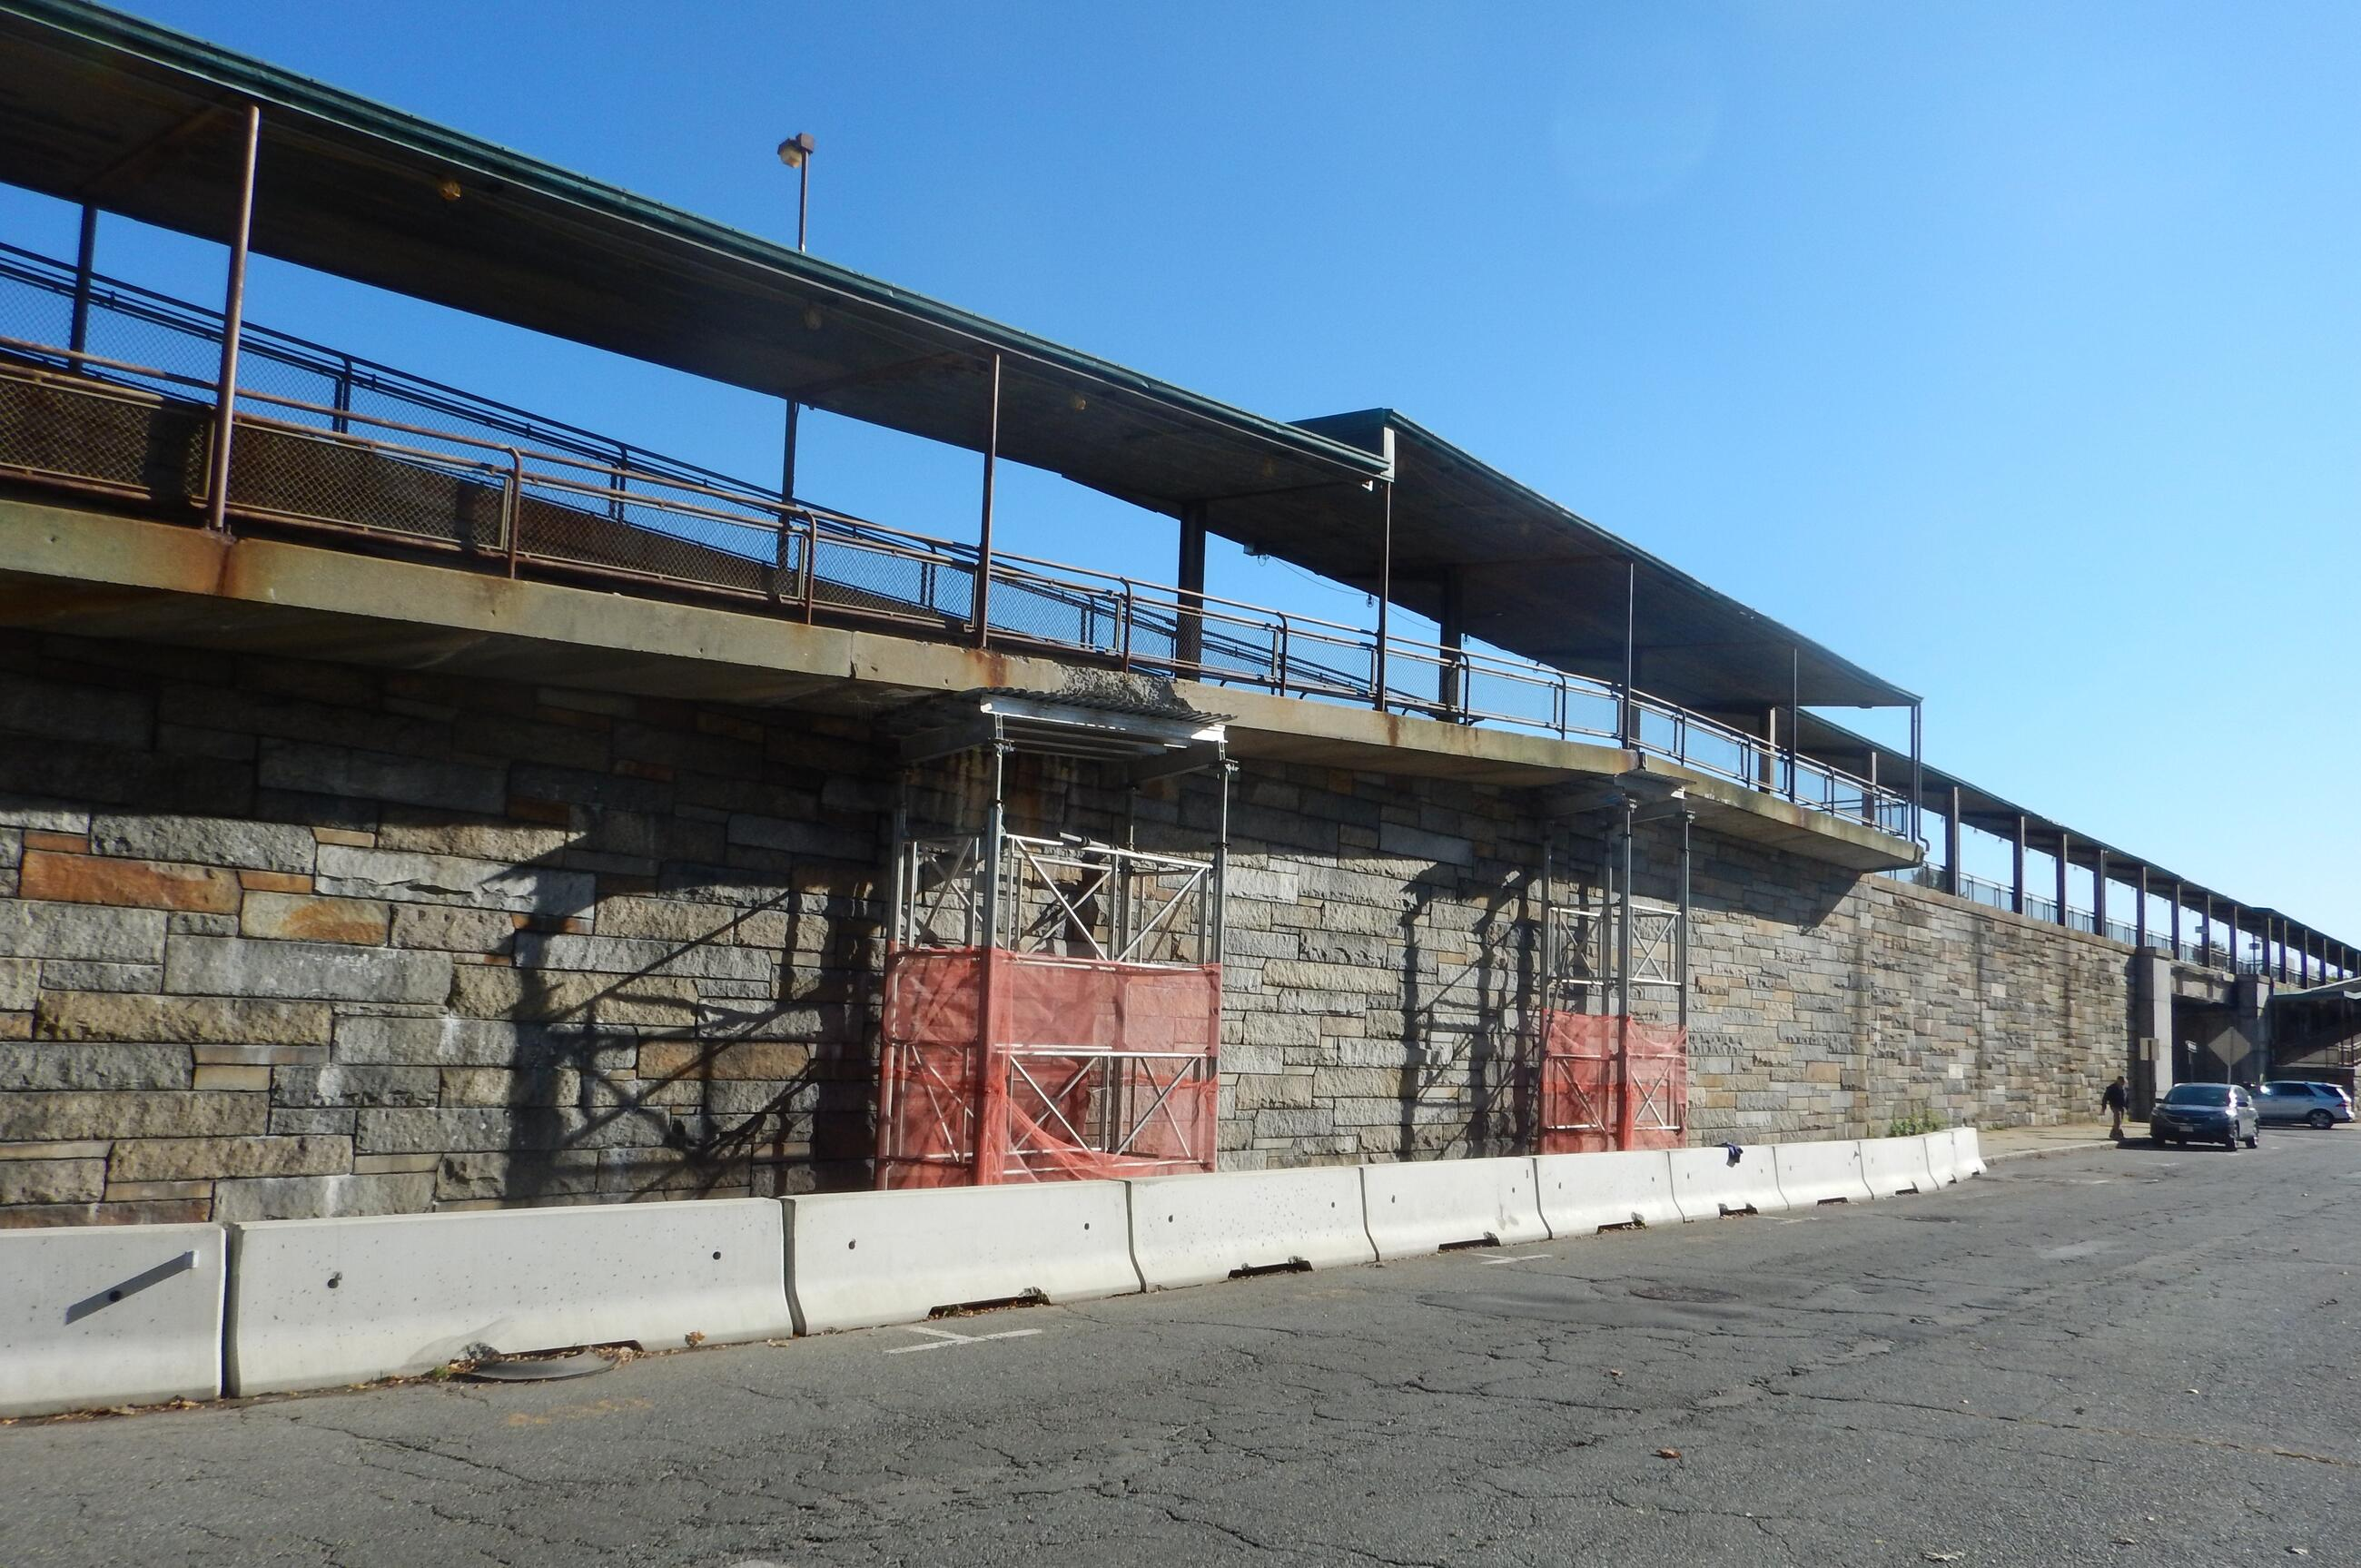 Winchester Station has been closed for emergency ramp demolition.